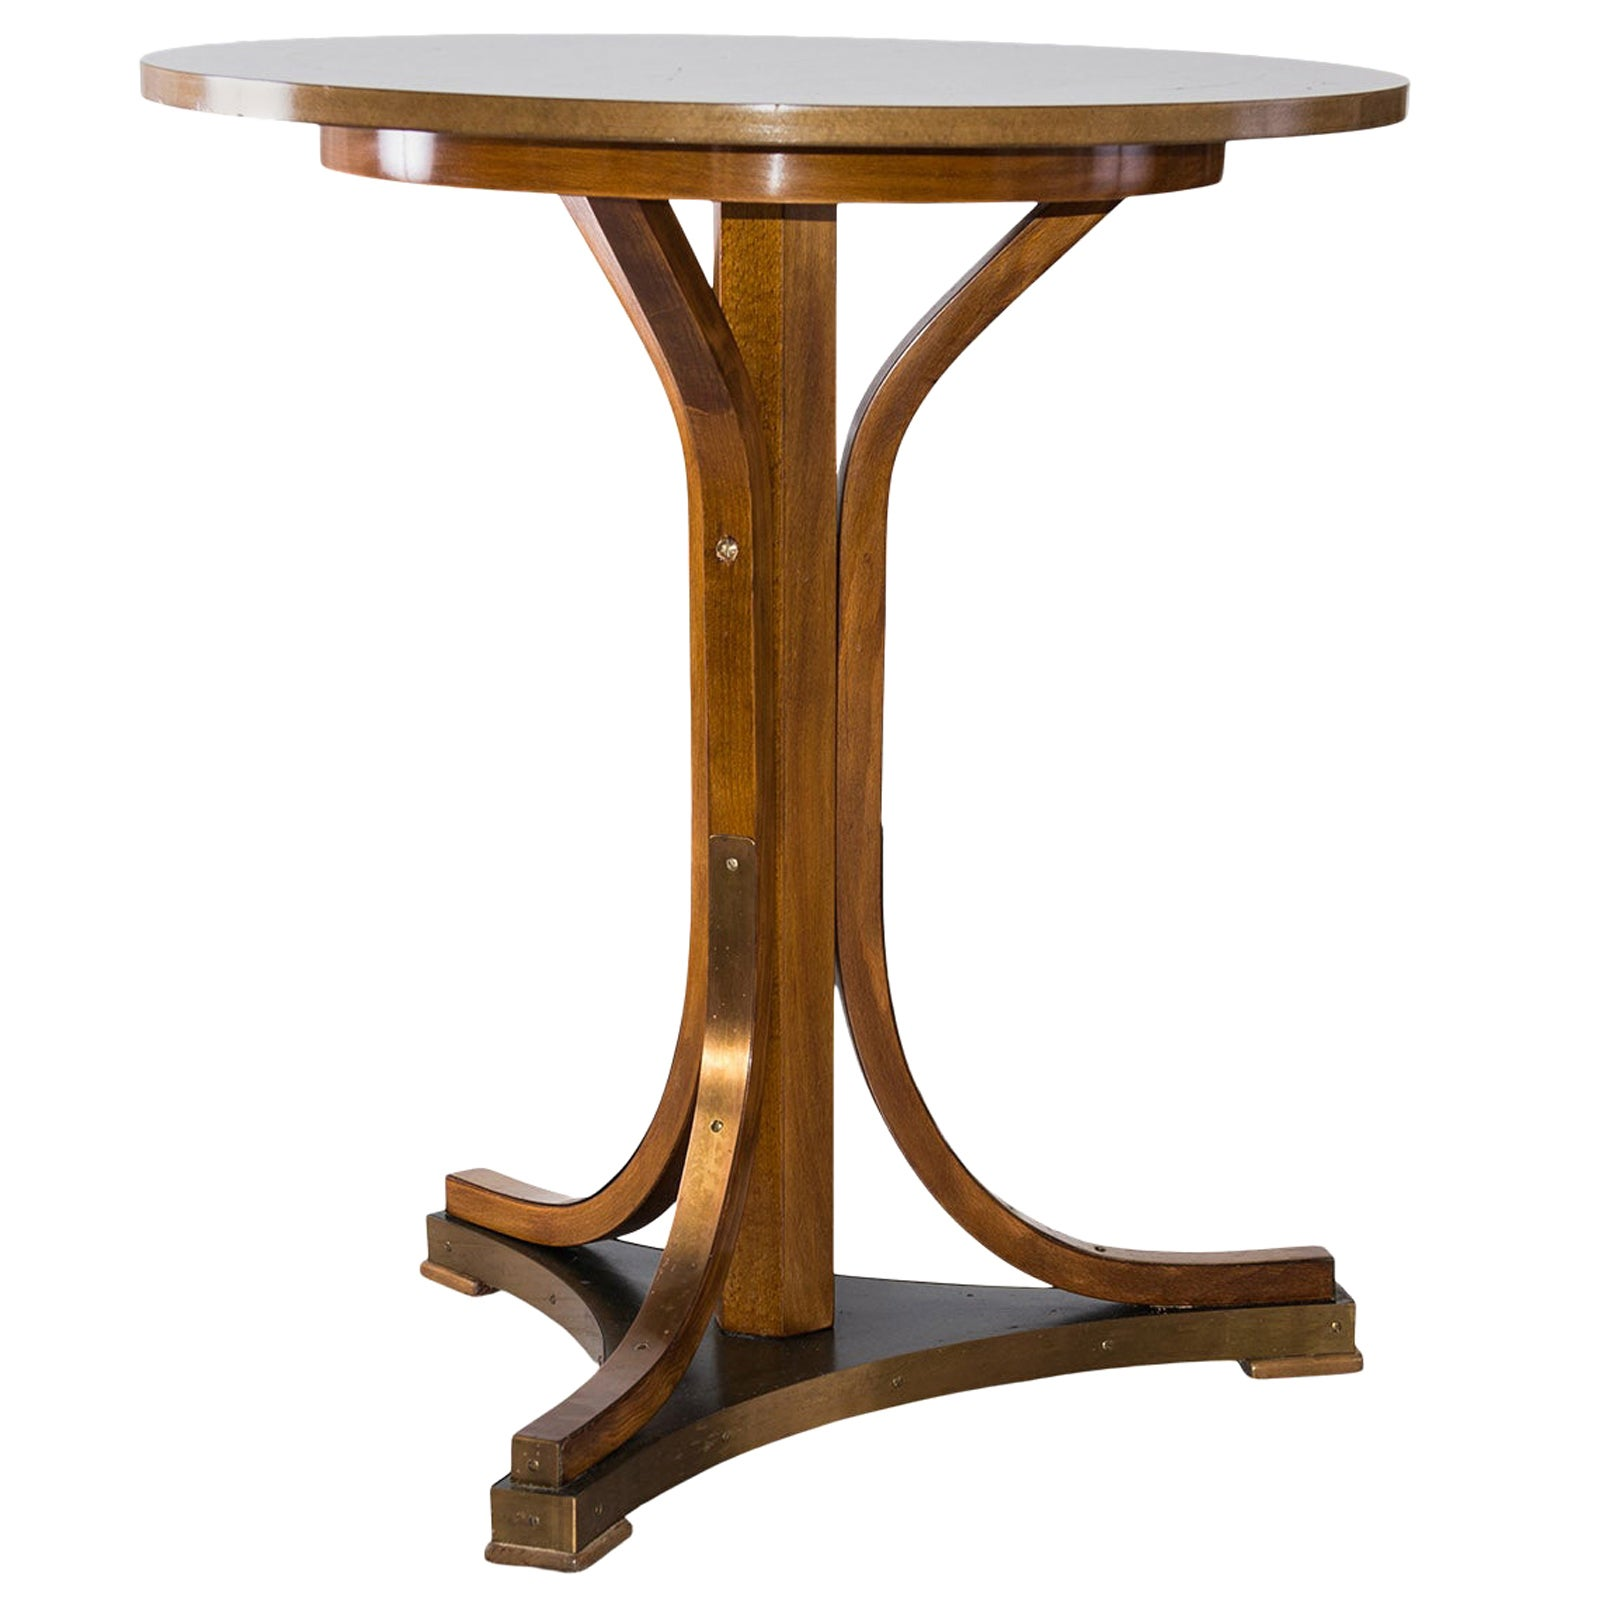 Otto Wagner Attributed to Thonet Jugendstil Coffee Table